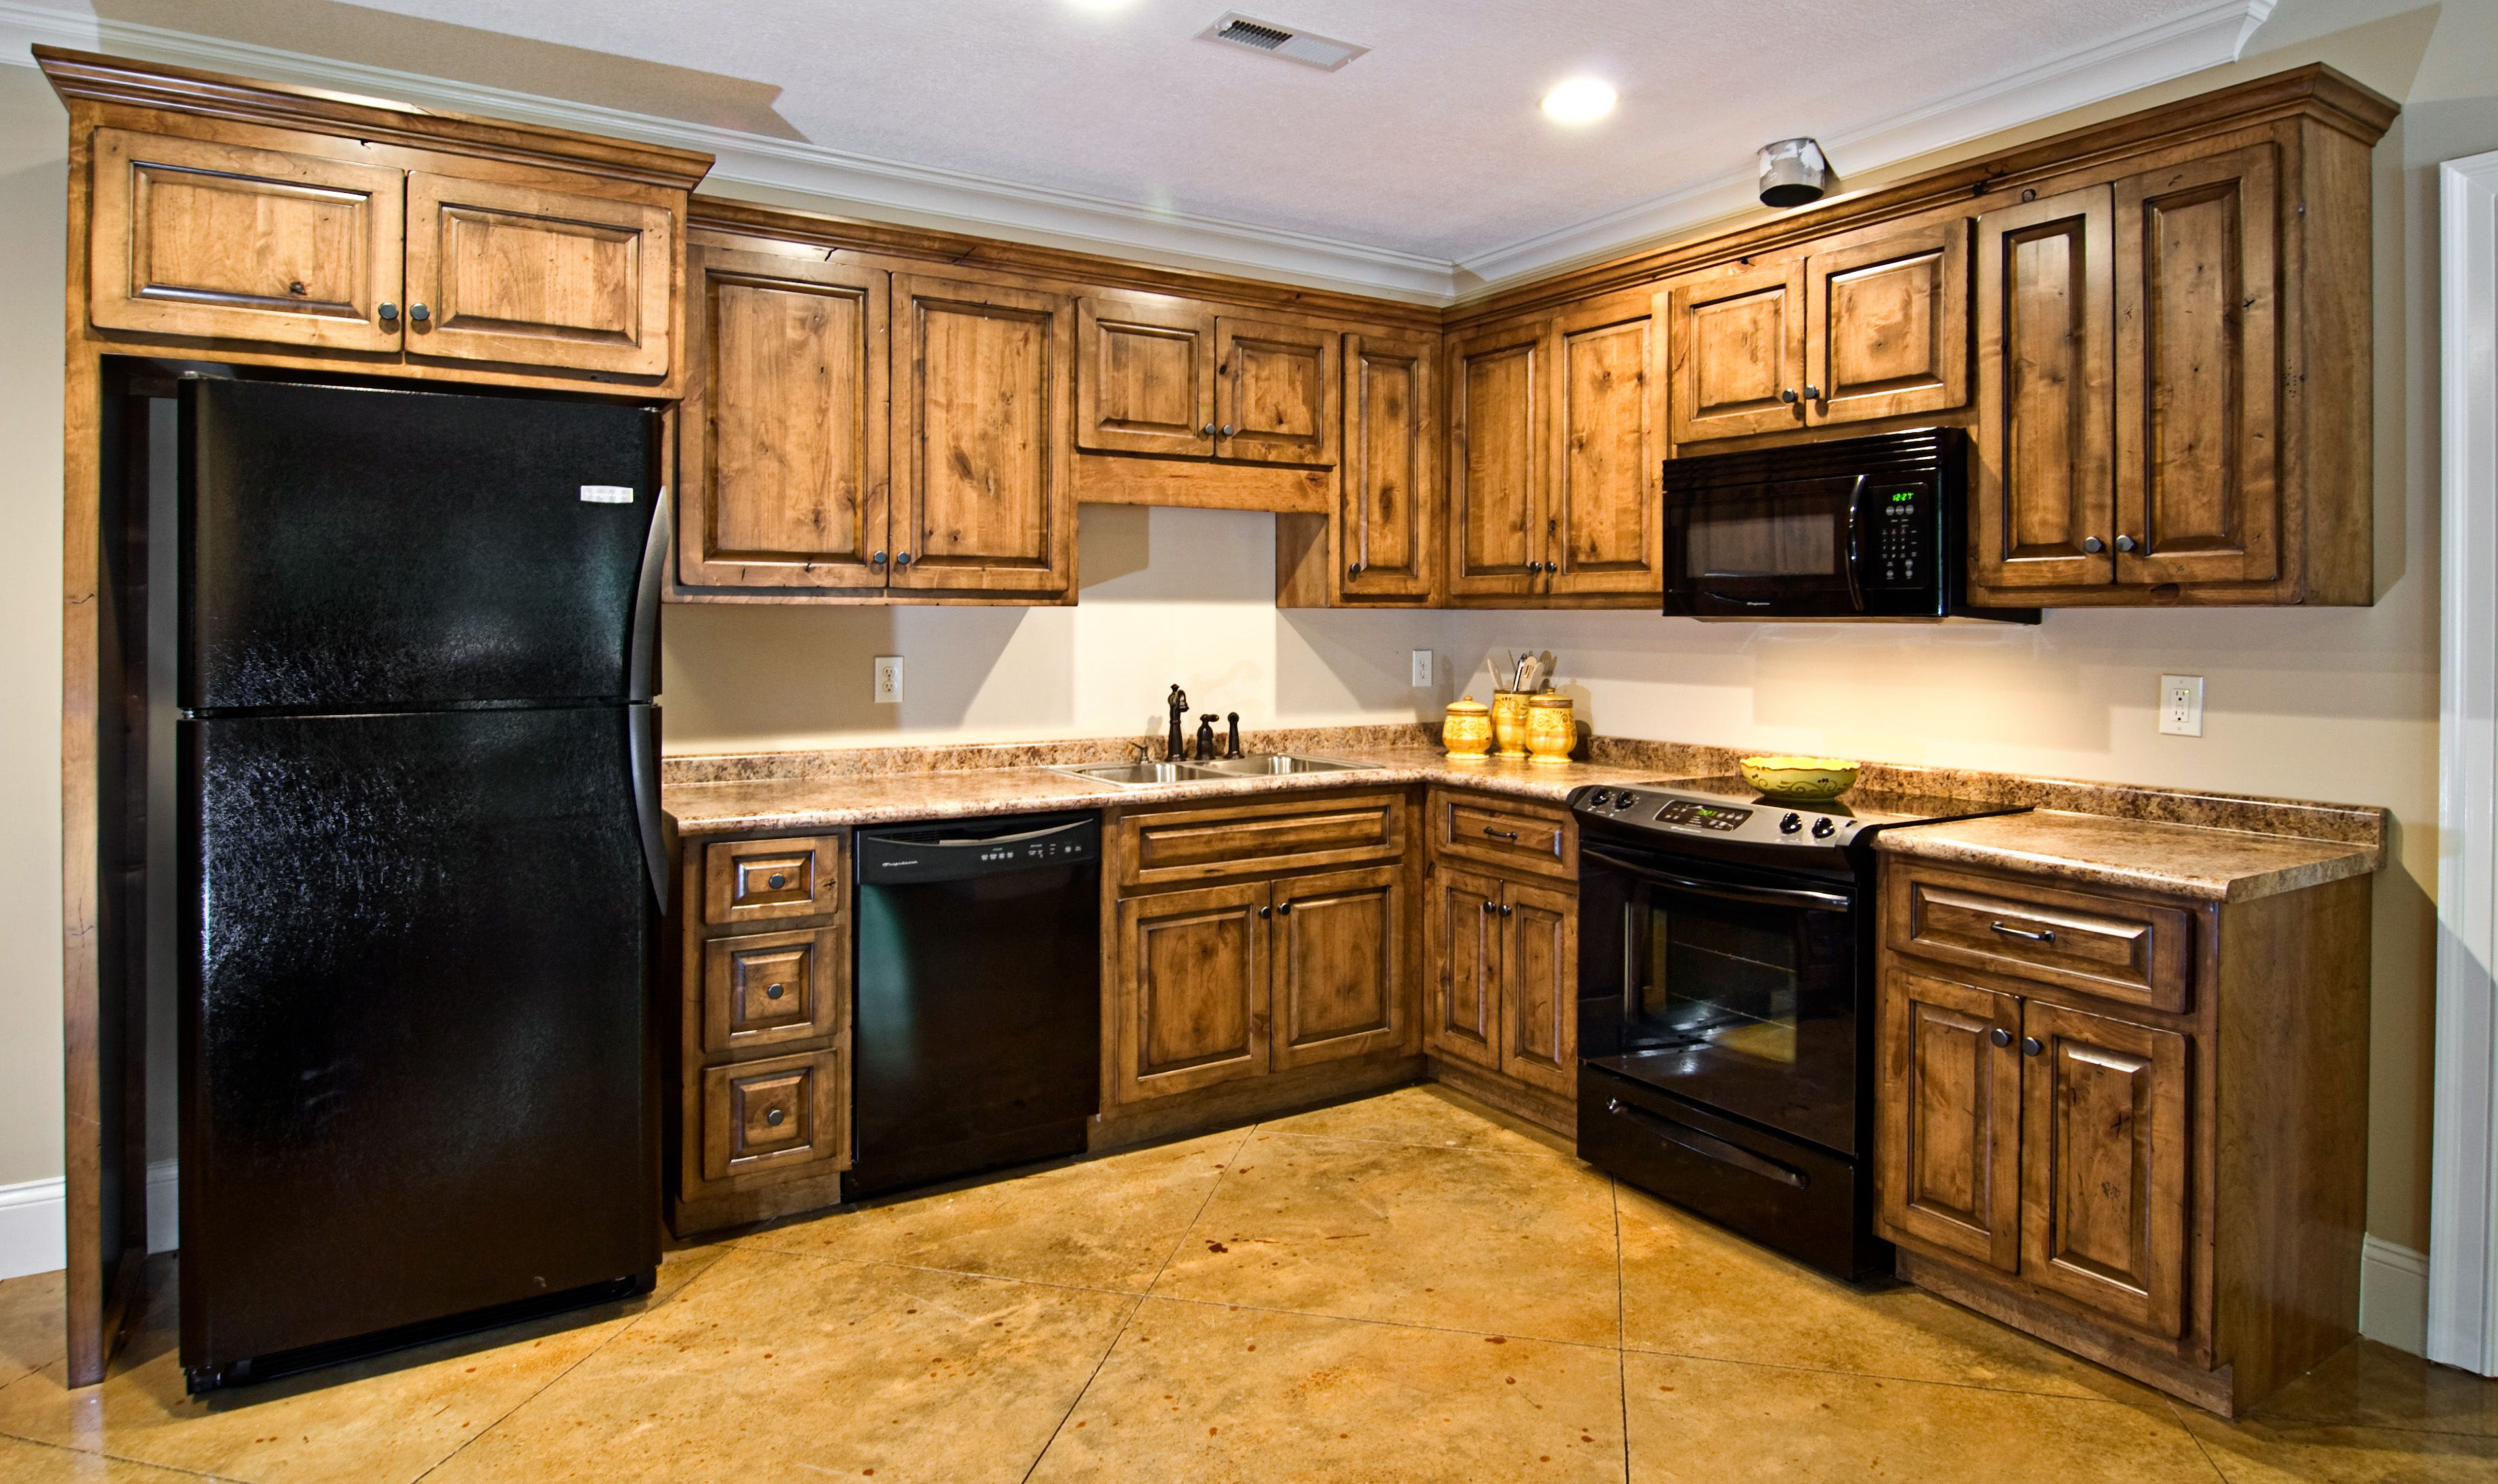 Hickory Kitchen Cabinets Pictures | Knotty Alder With Coffee Stain And  Black Distressing